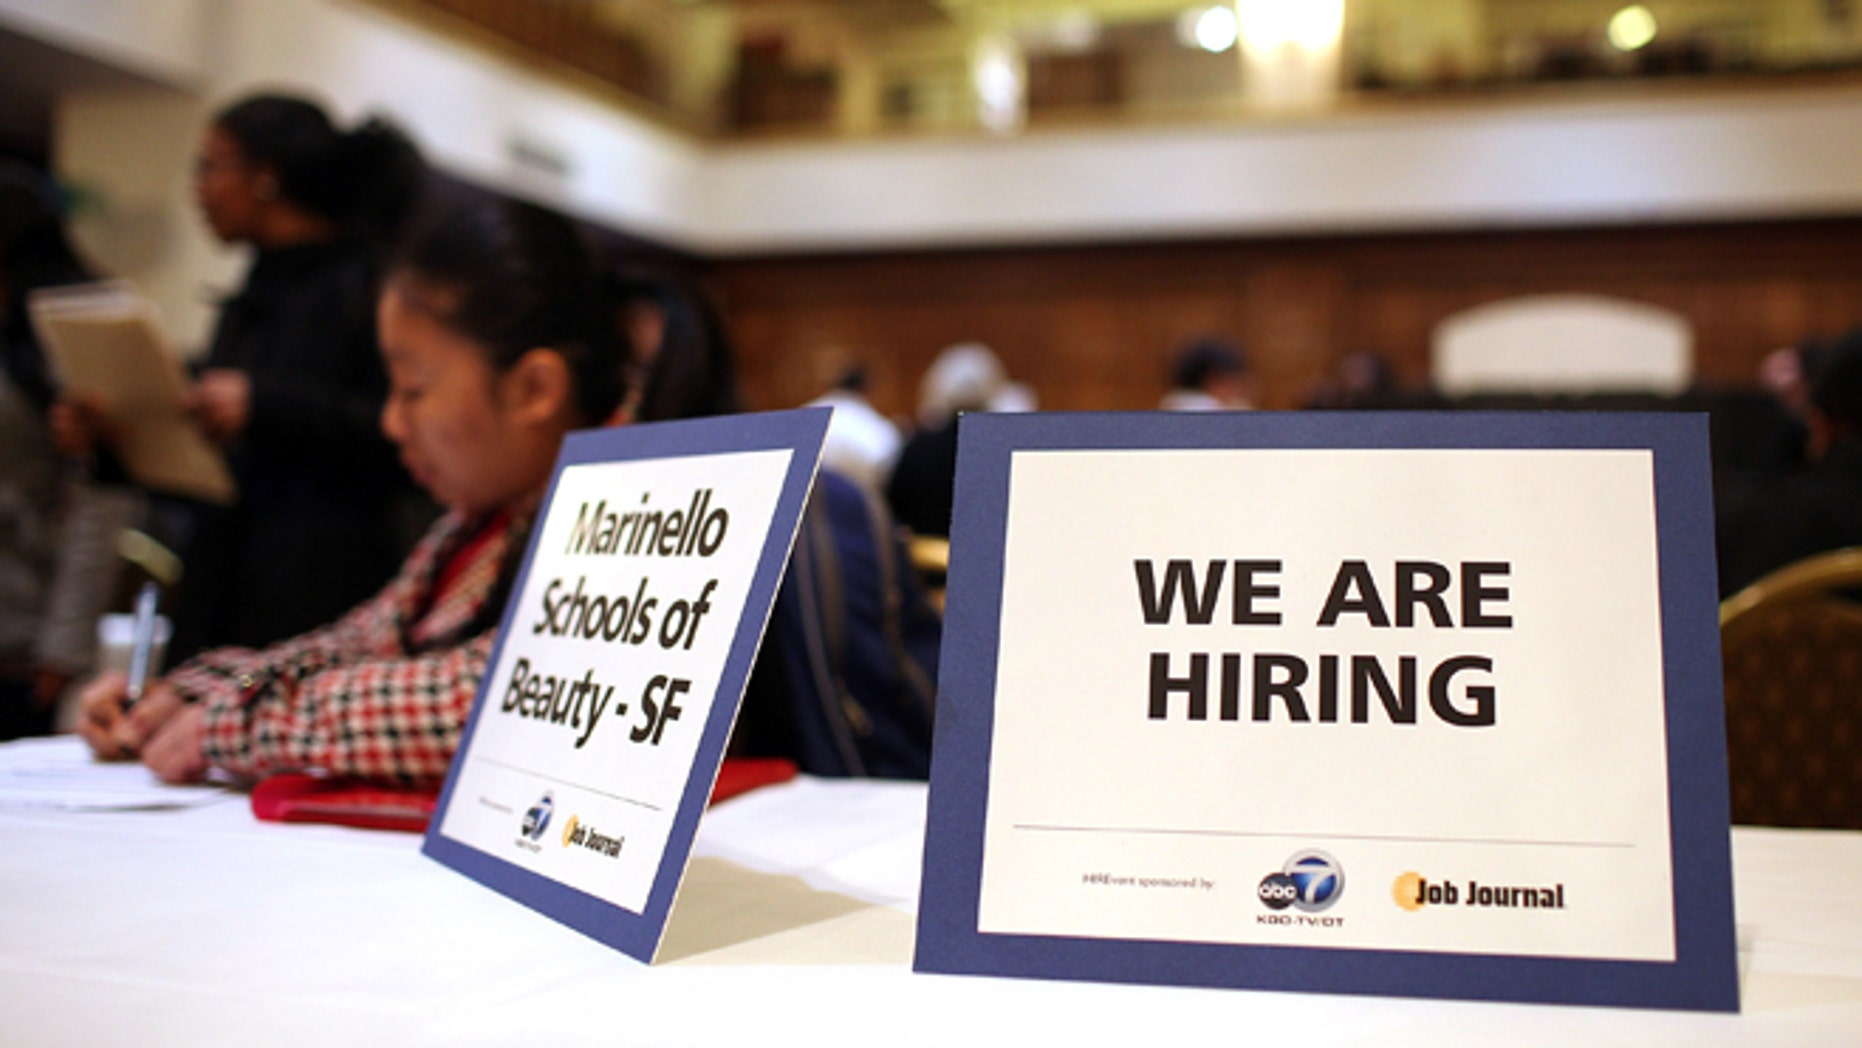 """SAN FRANCISCO, CA - MARCH 27:  A """"we are hiring"""" sign is displayed on a table during the San Francisco Hirevent job fair at the Hotel Whitcomb on March 27, 2012 in San Francisco, California. As the national unemployment rate stands at 8.3 percent, job seekers turned out to meet with recruiters at the San Francisco Hirevent job fair where hundreds of jobs were available.  (Photo by Justin Sullivan/Getty Images)"""